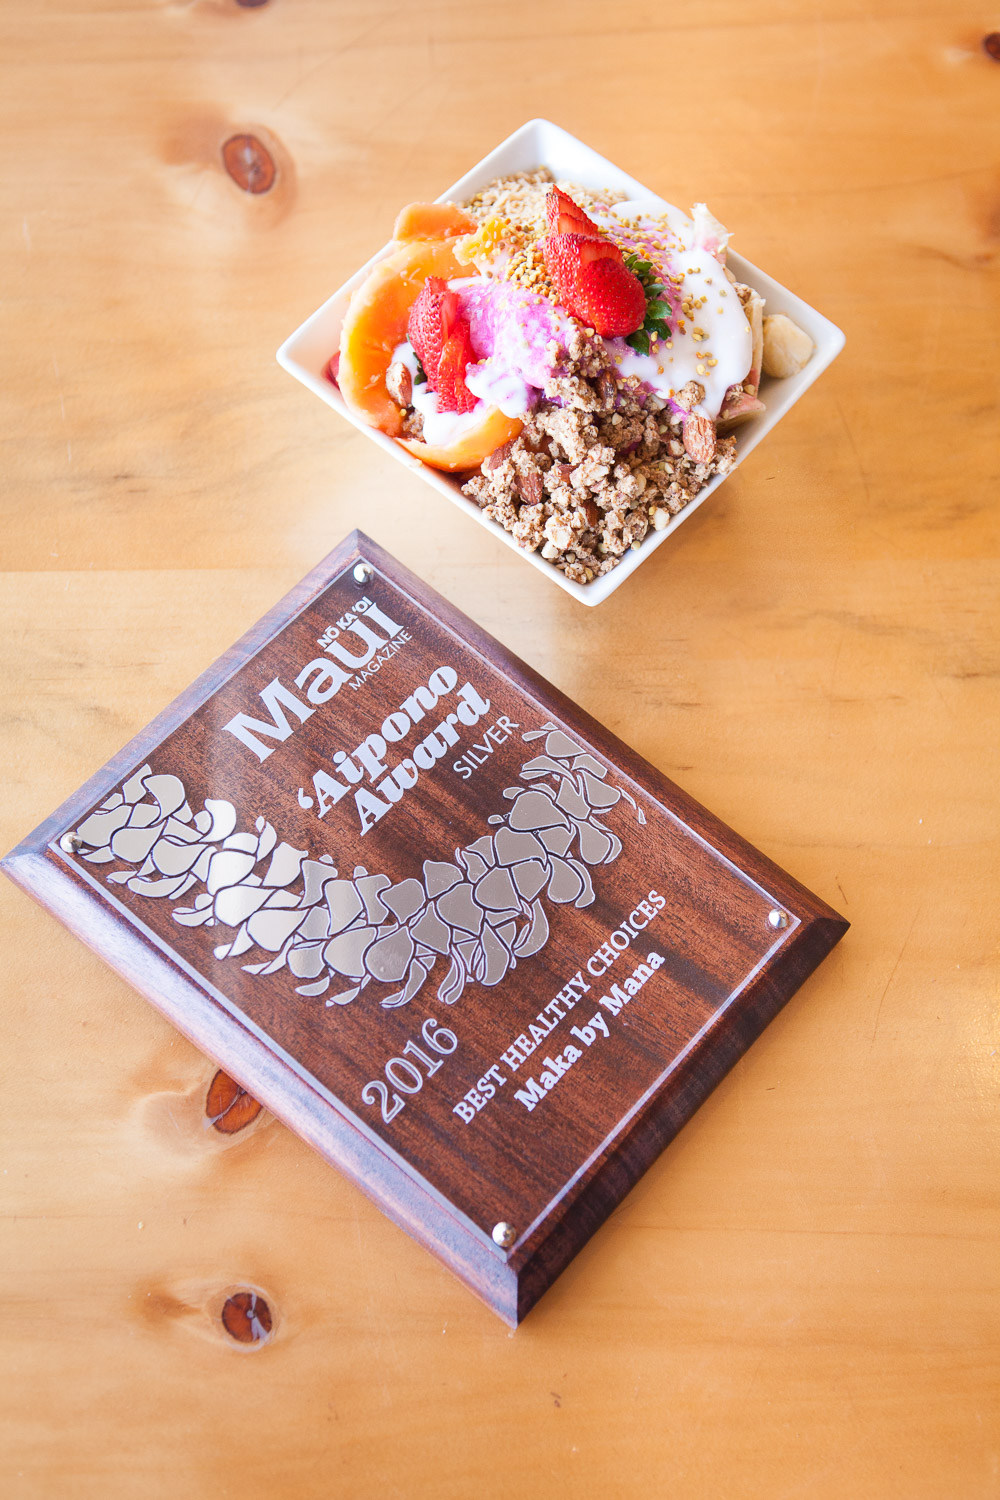 award-winning-acai-fruit-bowl-Maka-restaurant.jpg